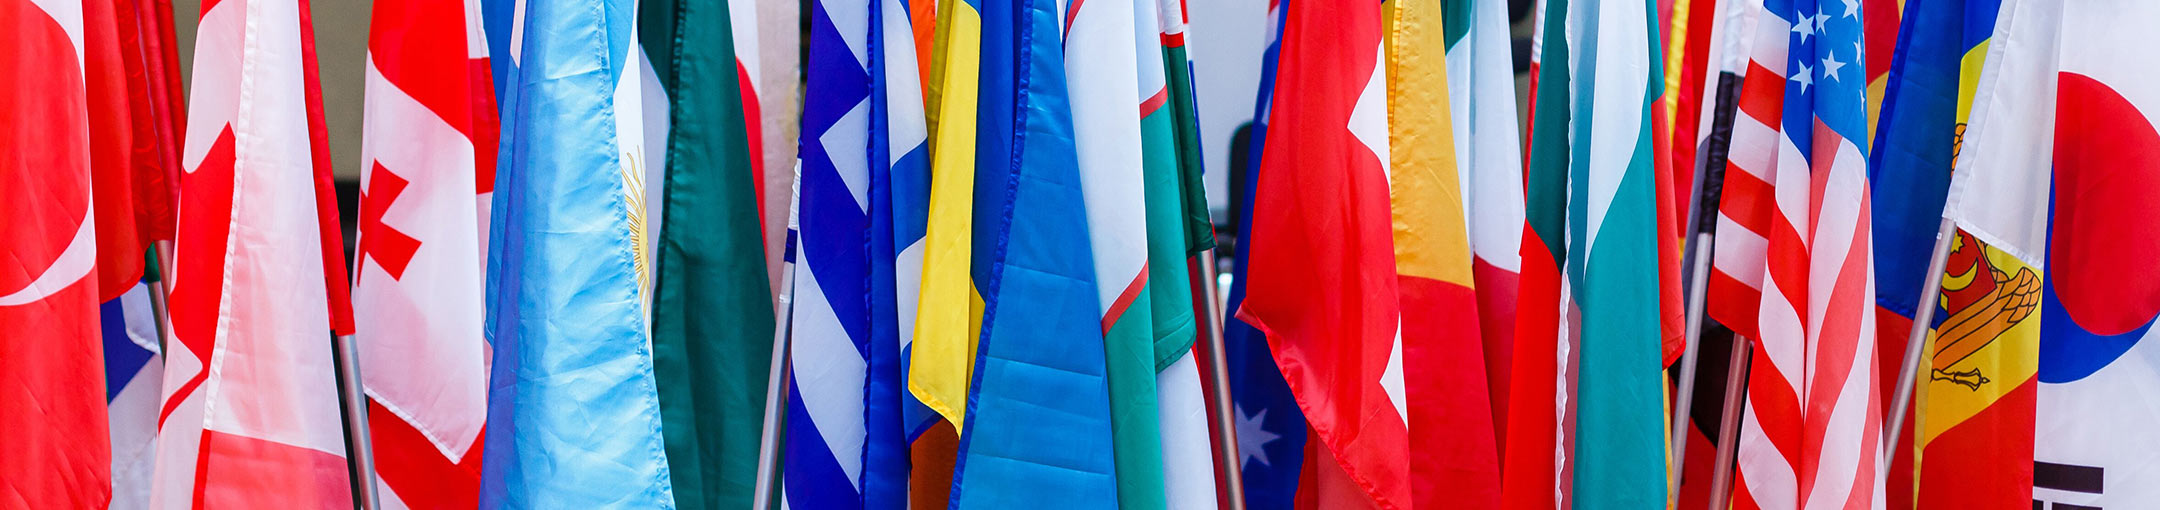 international flags for the background header image